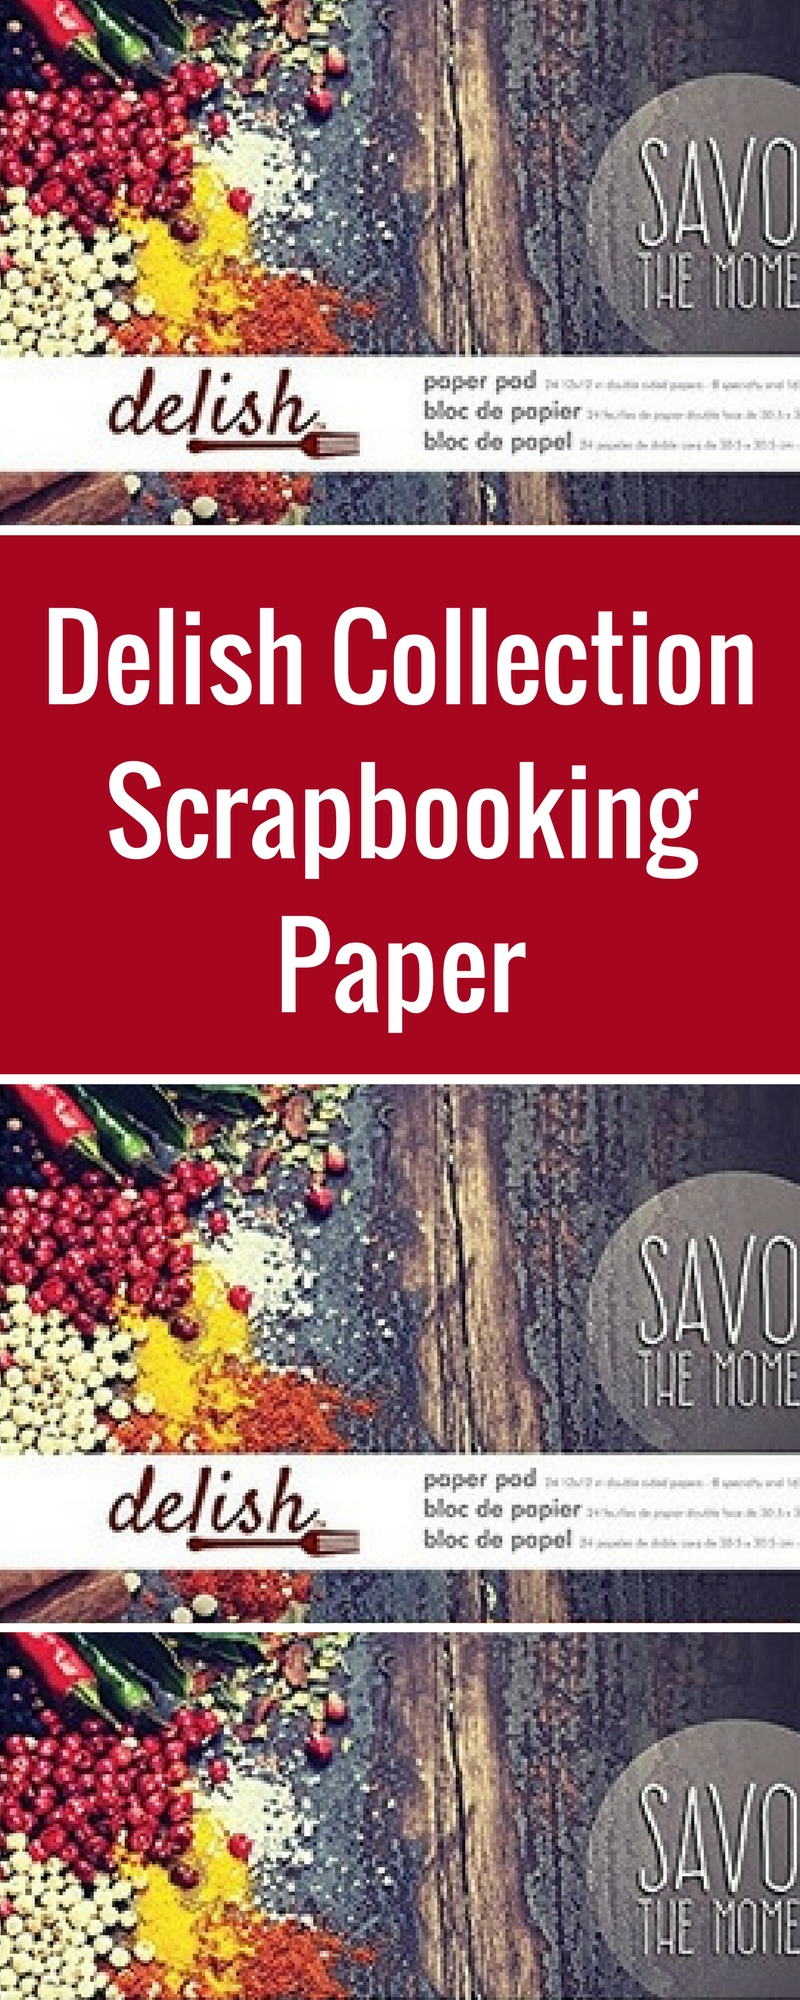 Scrapbooking Food Photos | Featuring Delish Collection from Paper House Productions | Layout Designed by Tracy McLennon | Creative Scrapbooker Magazine #scrapbooking #food